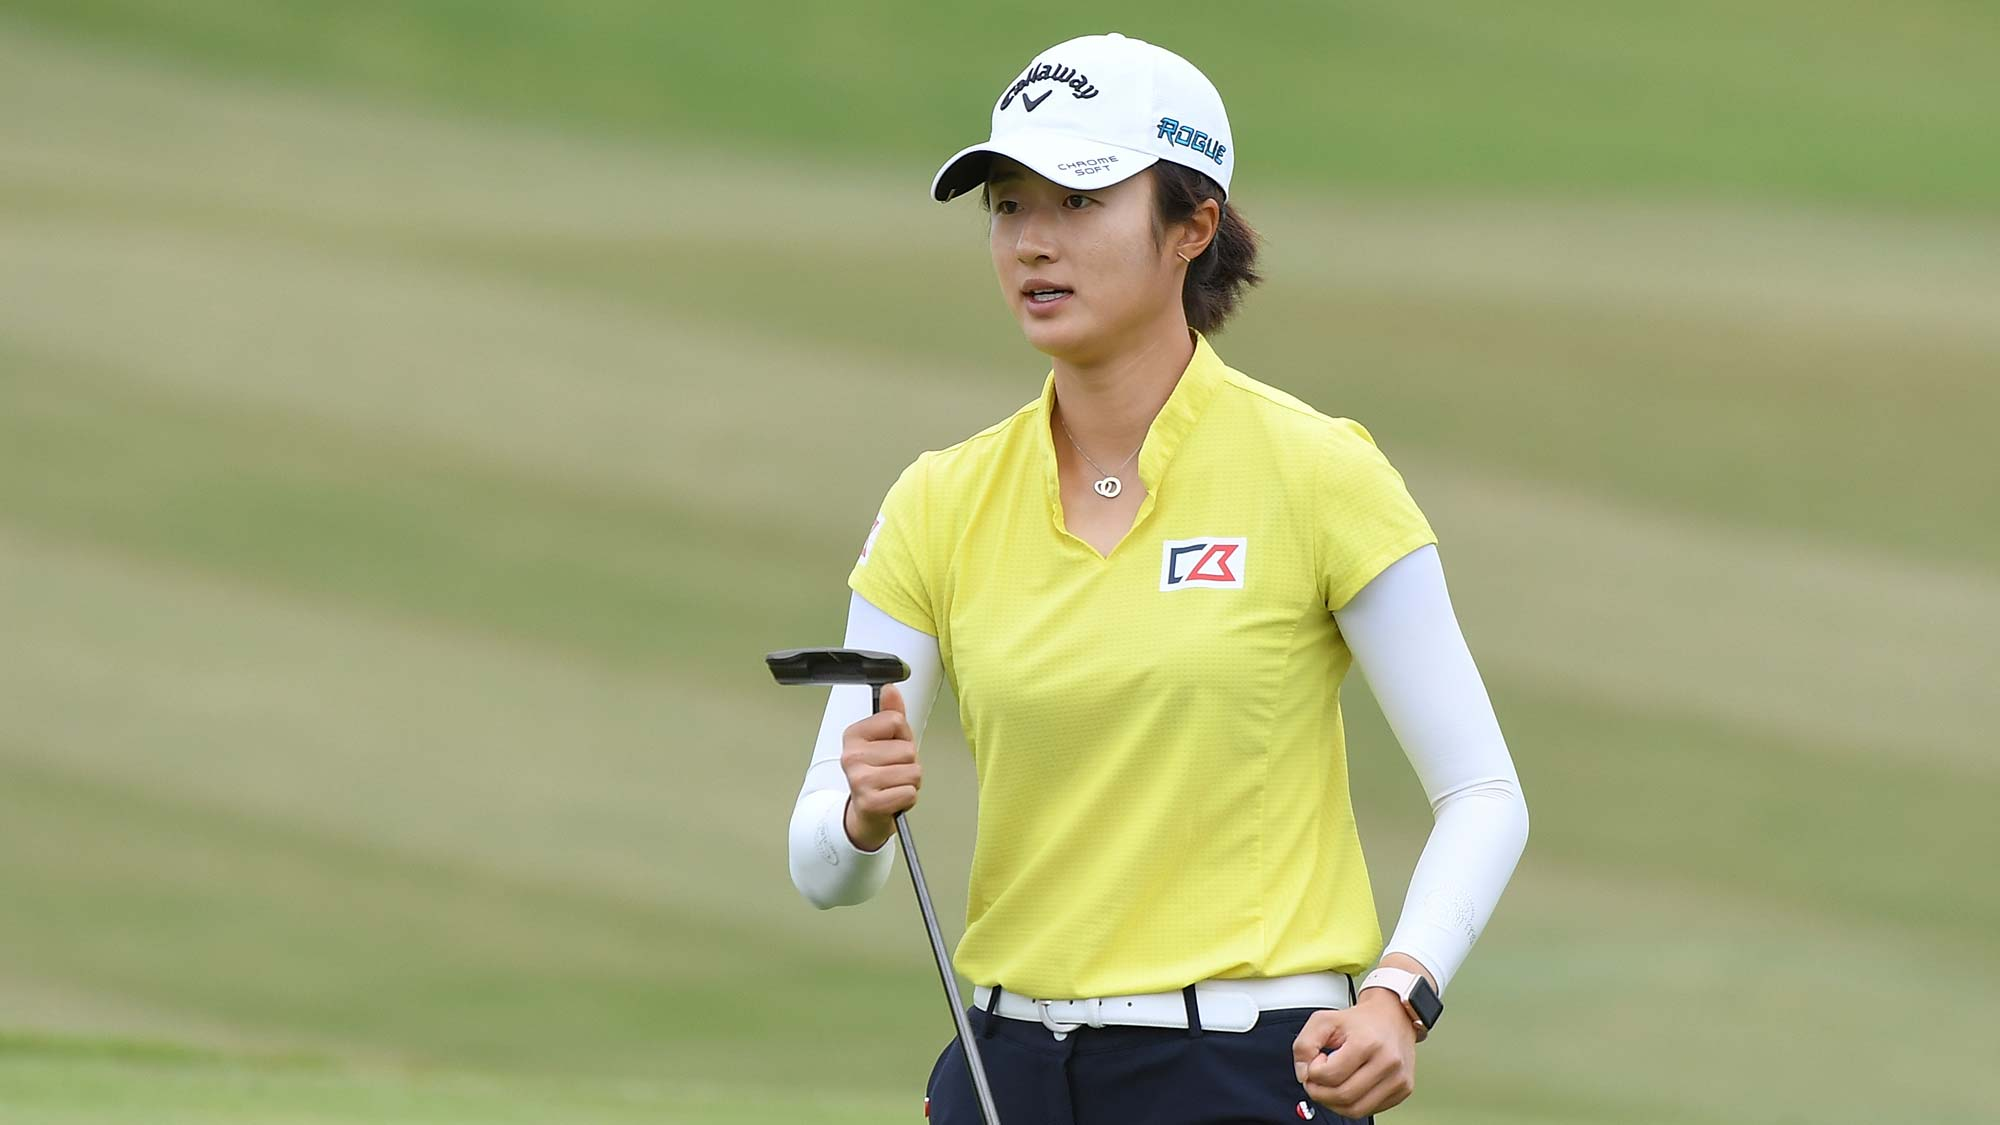 Yu Liu of China plays a shot during the third round of the Buick LPGA Shanghai